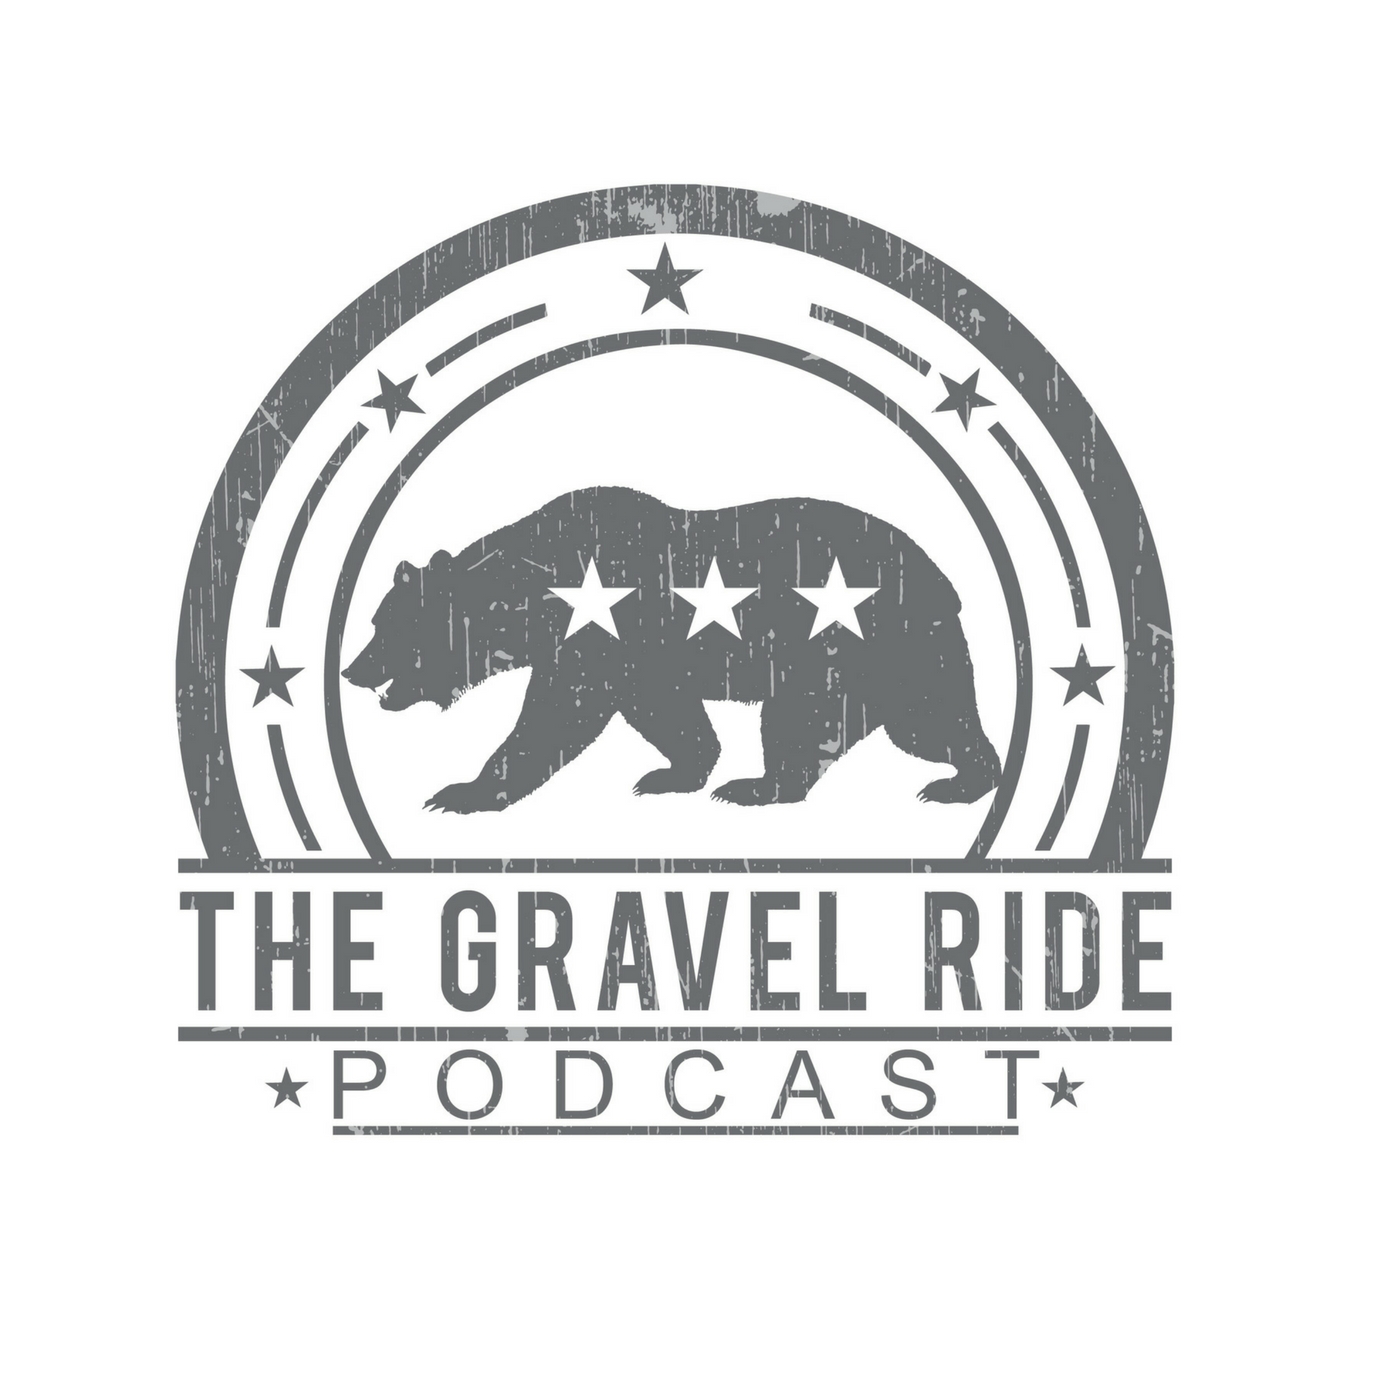 A highlight from Spooky cycles - the return of aluminum gravel bikes with the ROVR